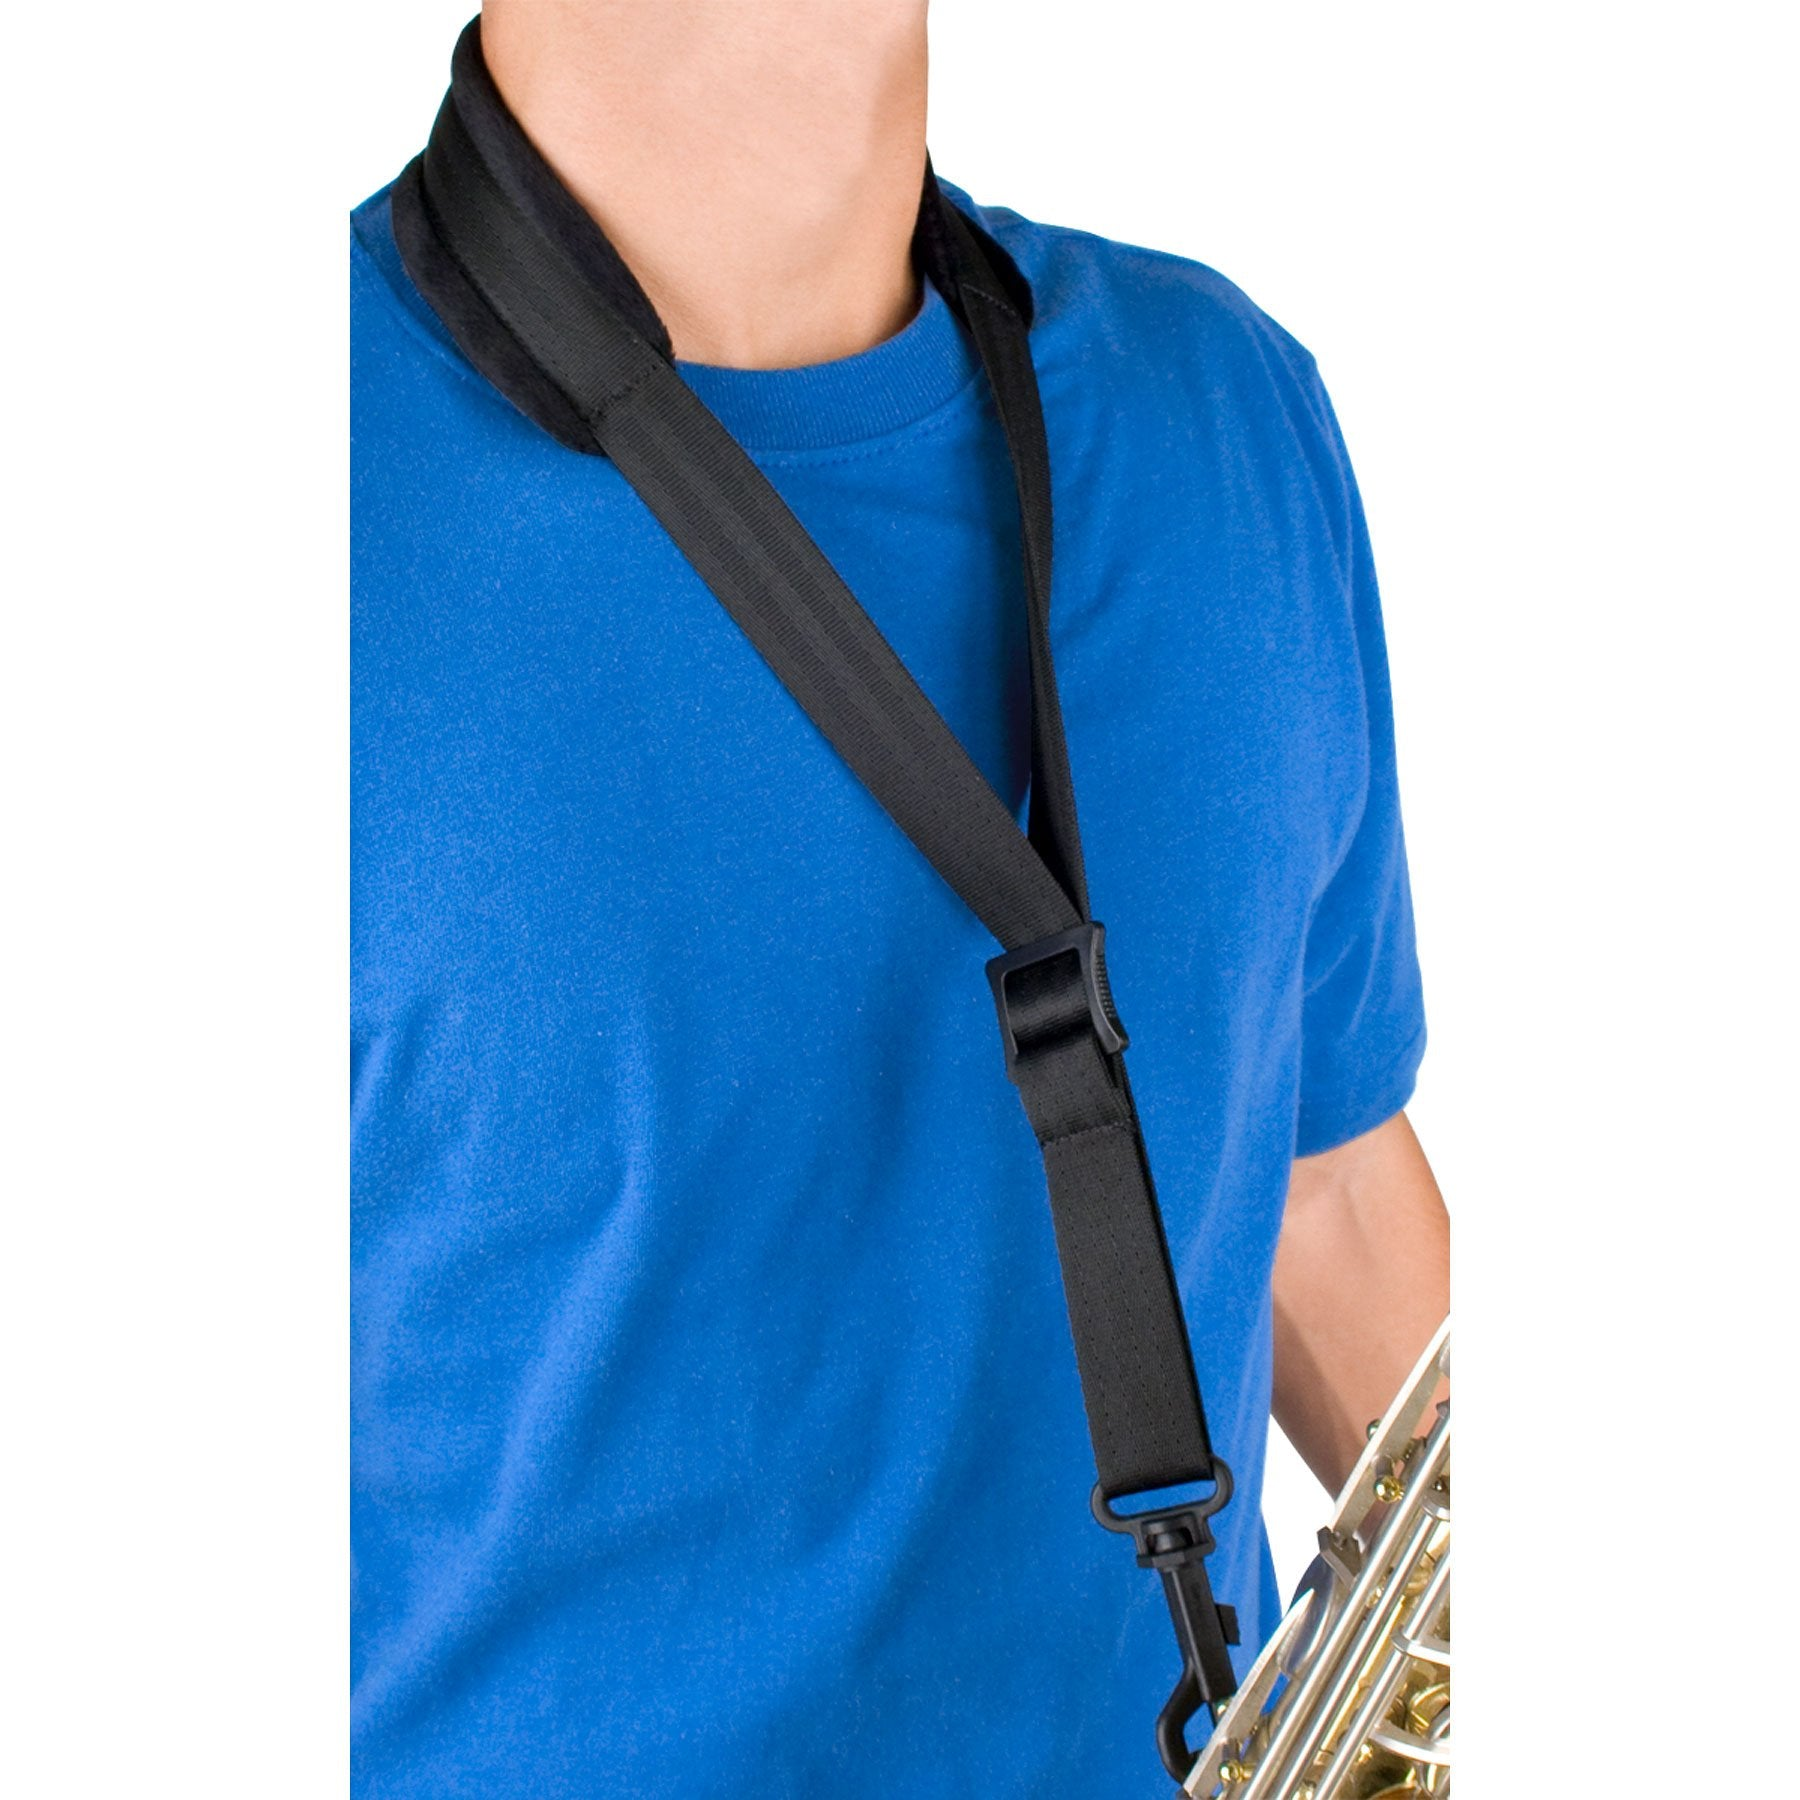 Protec - Saxophone Neck Strap Featuring Velour Neck Pad and Plastic Swivel Snap-Accessories-Protec-Music Elements